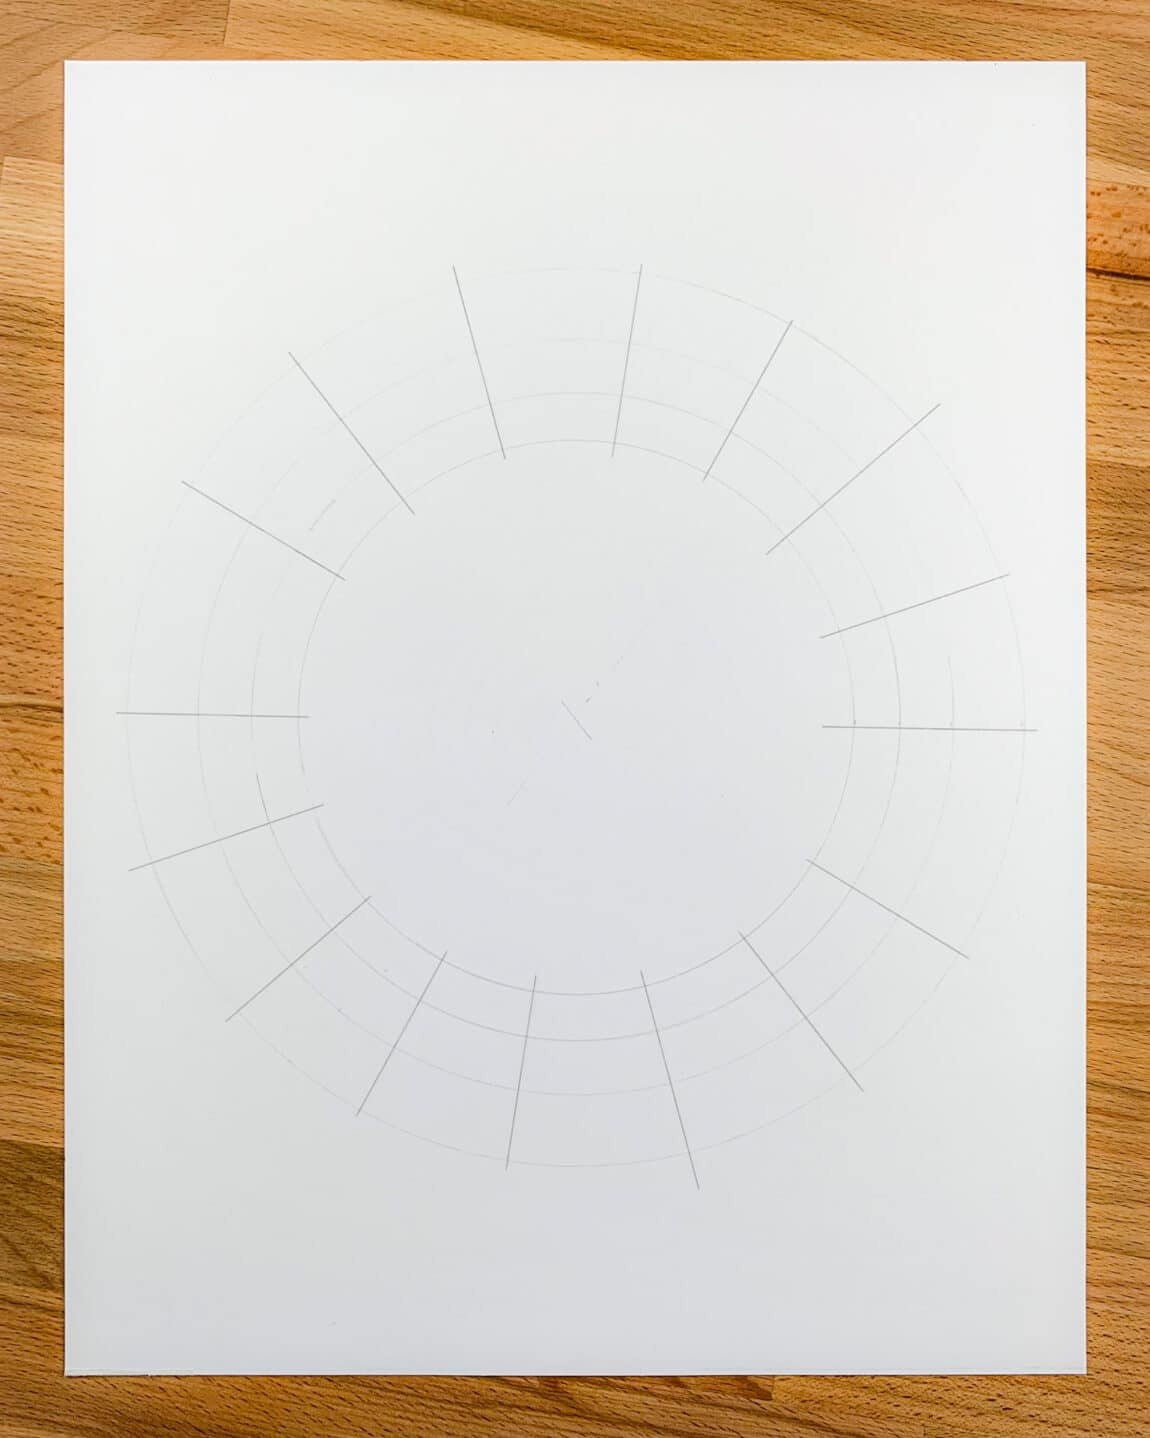 guidelines for the calligram